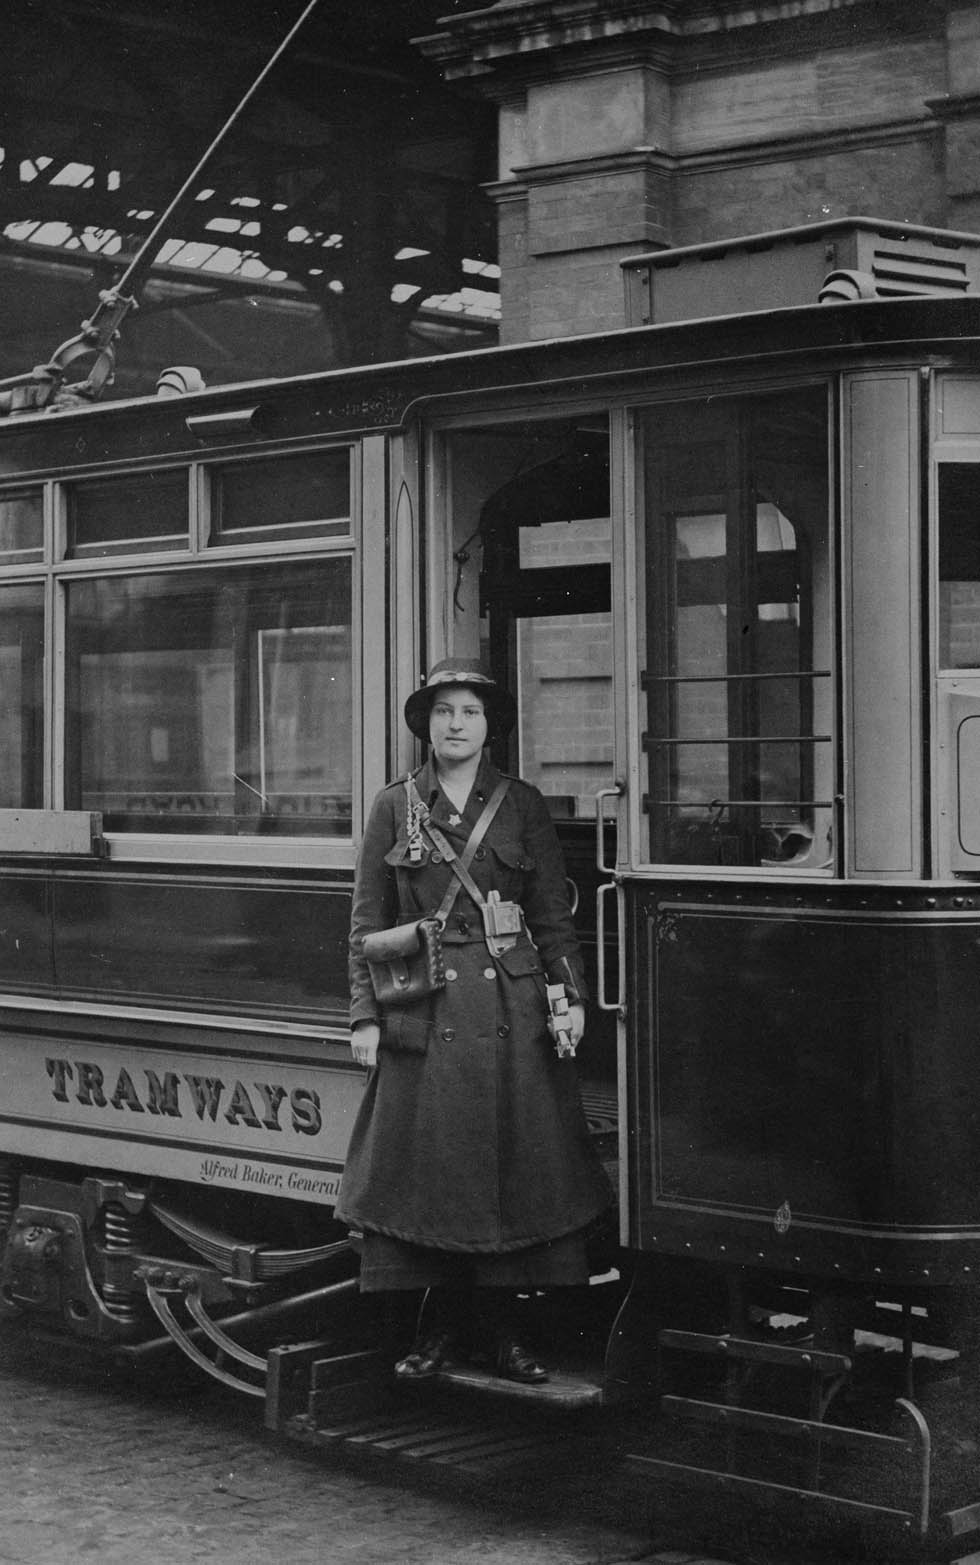 Tramway Tommies and Clippie Girls